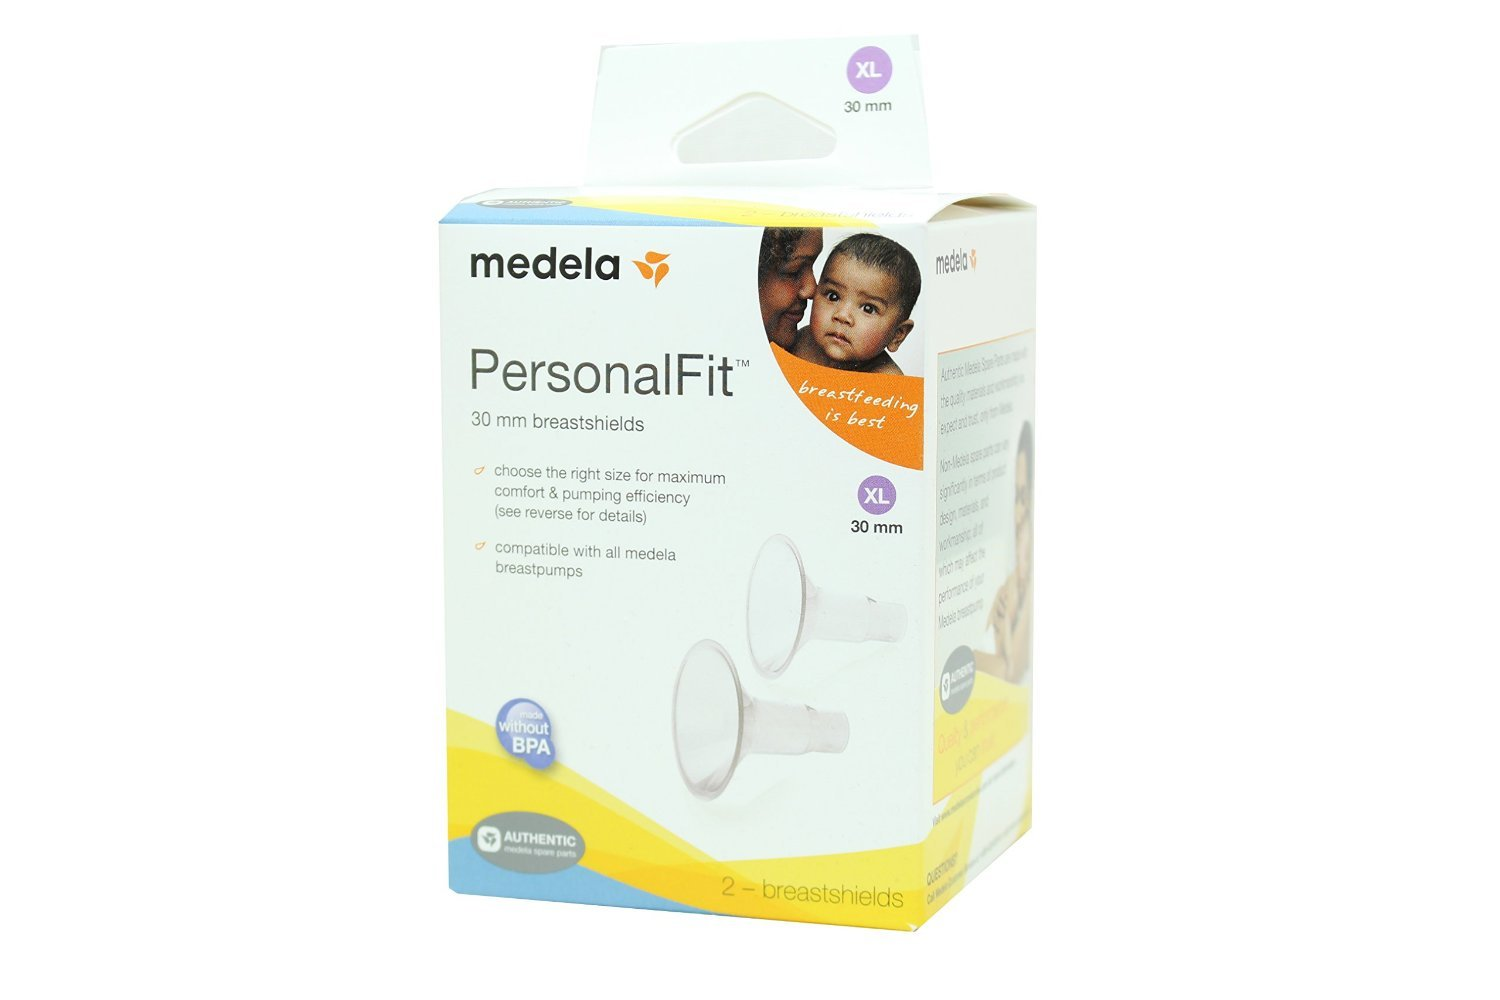 Medela PersonalFit Breastshields (2), Size: X-Large (30mm) in Retail Packaging (Factory Sealed) #87075 by Medela